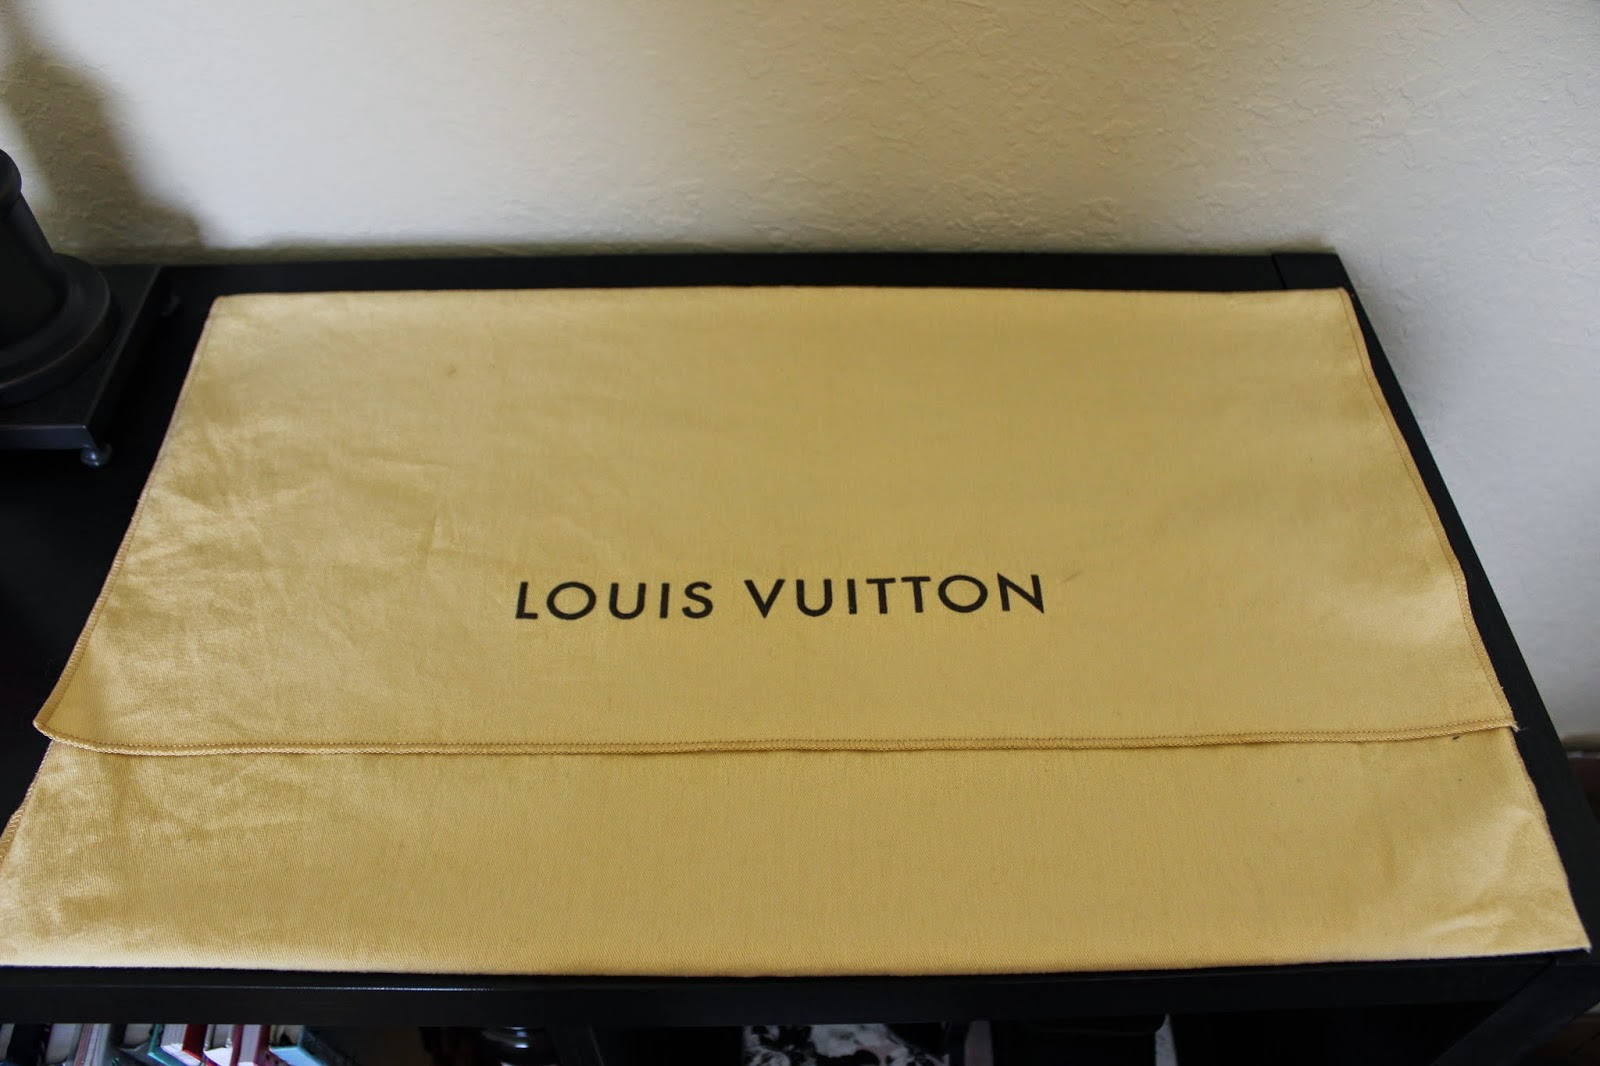 Louis Vuitton Speedy Bandoulière 30 dust bag